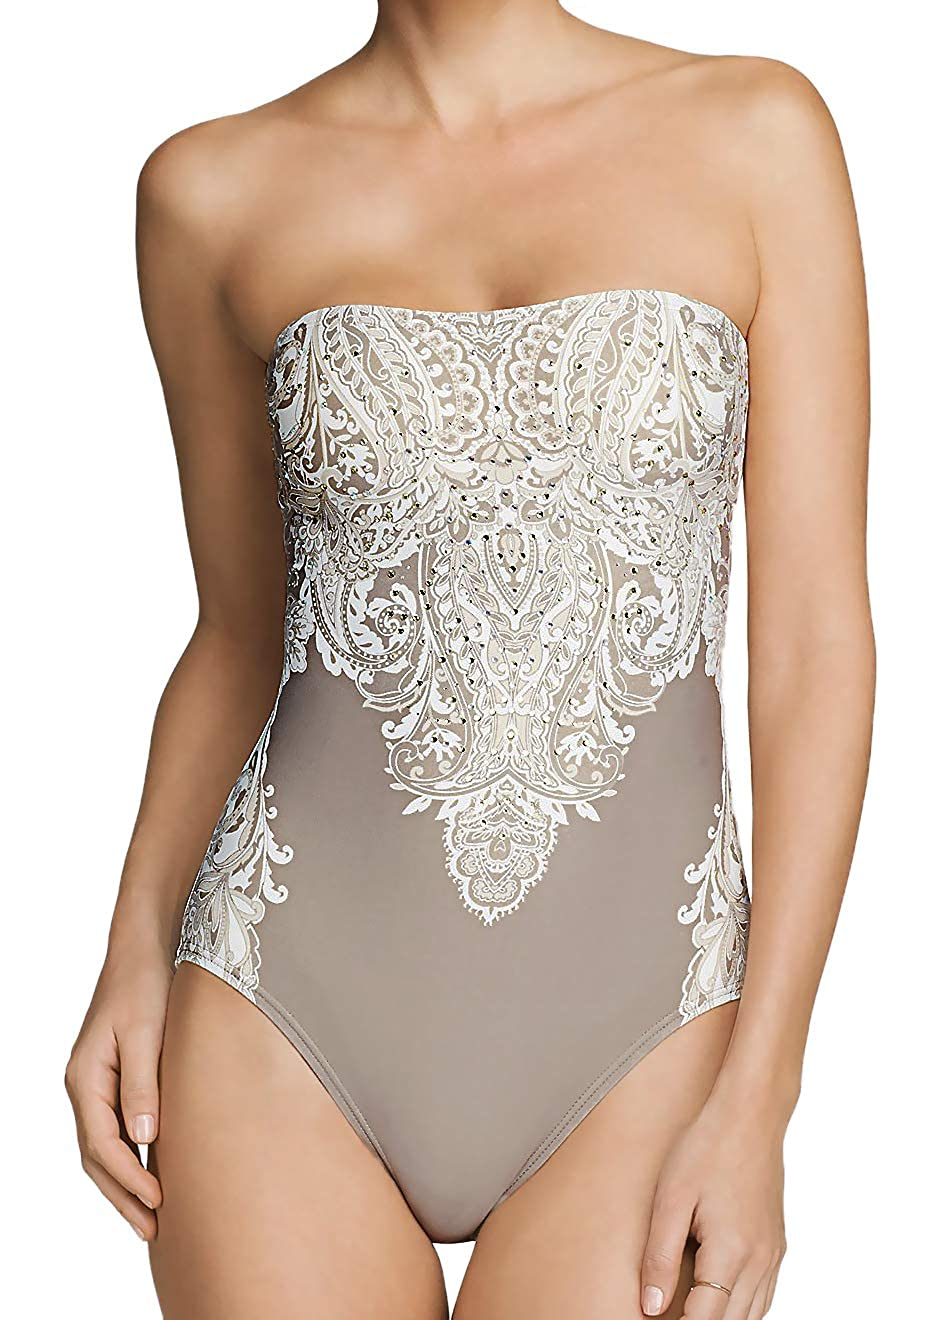 Carmen Marc Valvo One Piece Swimsuit Beaded Coast Garden Bandeau Maillot Taupe 10